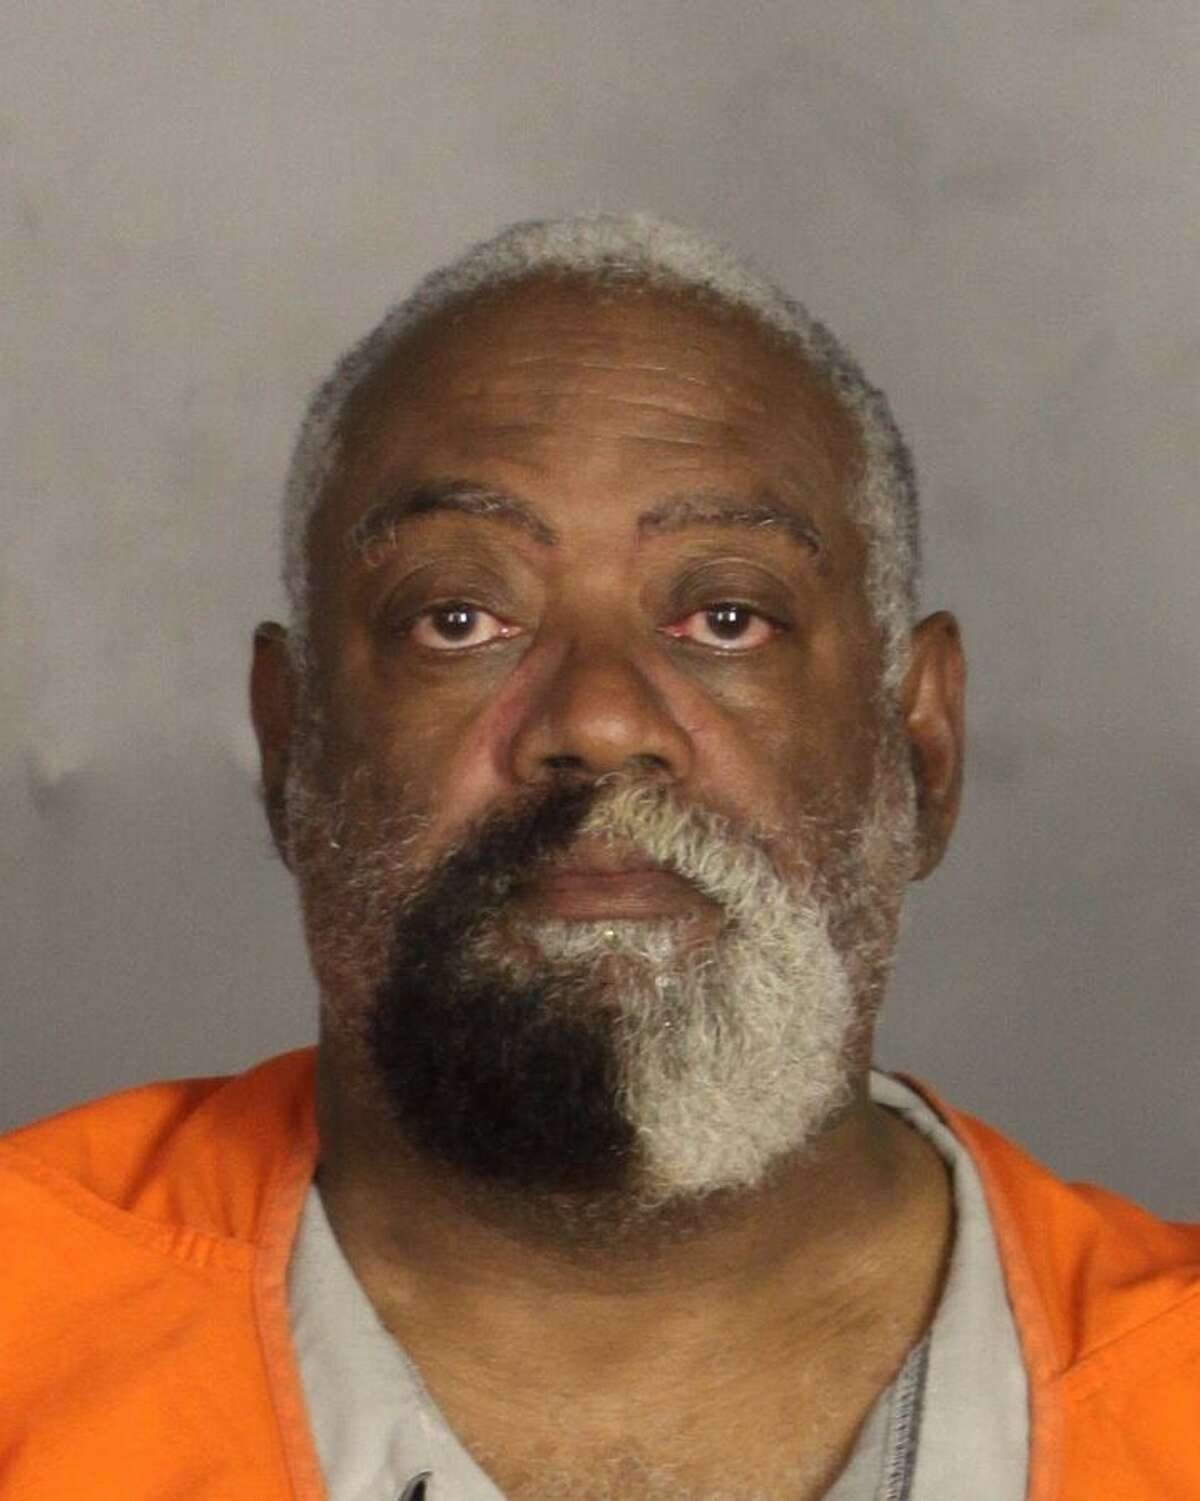 Martin Lewis, 62, was booked and charged with engaging in organized criminal activity in connection to a shooting involving motorcycle gangs at a Twin Peaks restaurant in Waco at around noon on May 17, 2015. The shooting left nine dead and 18 injured.